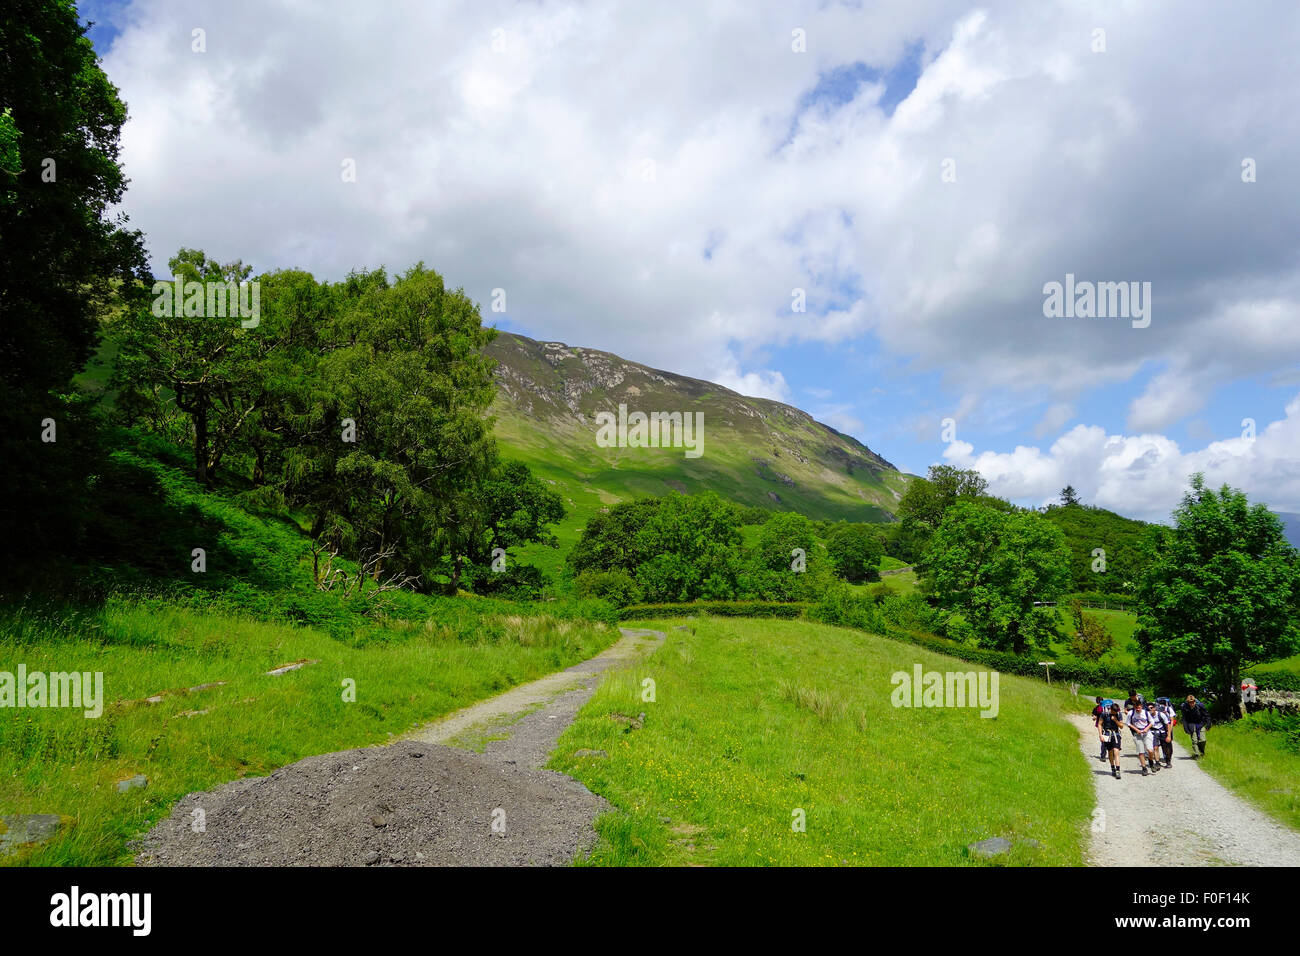 Allerdale Ramble, Borrowdale, Lake District National Park, Cumbria, England, UK in Summer - Stock Image